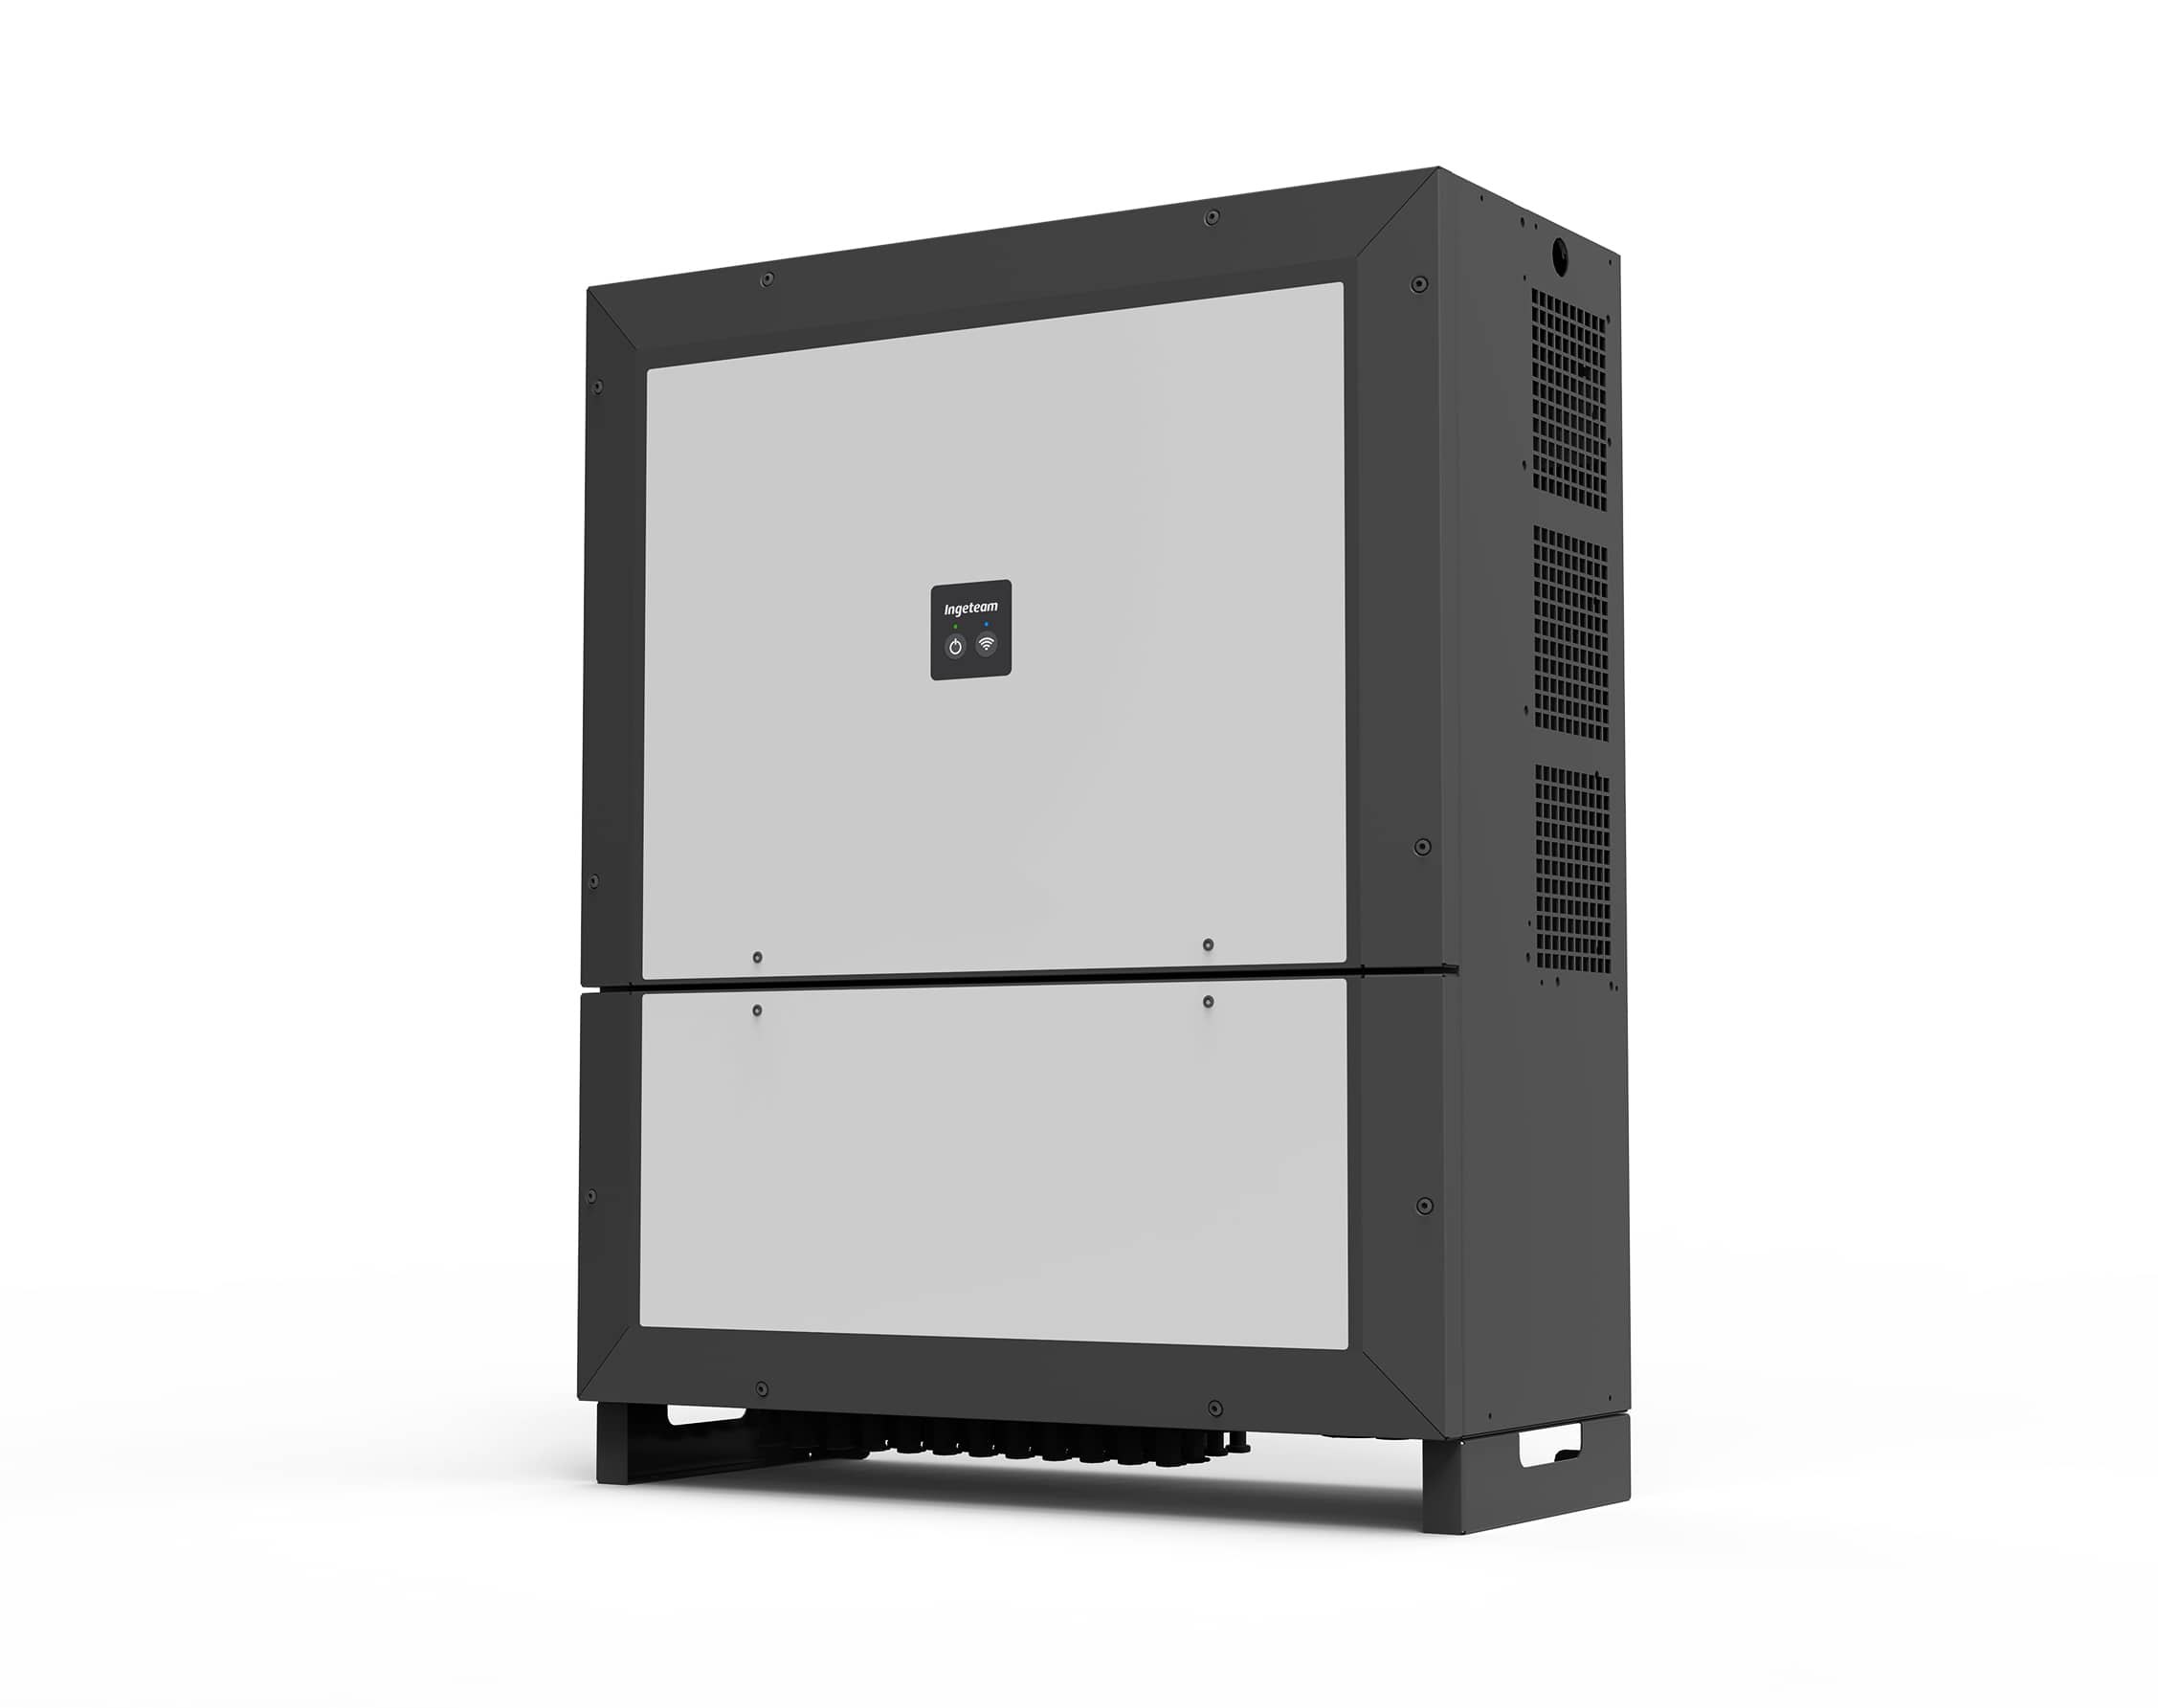 Ingeteam Ingeteam Unveils 100 kW Three-Phase String Inverter